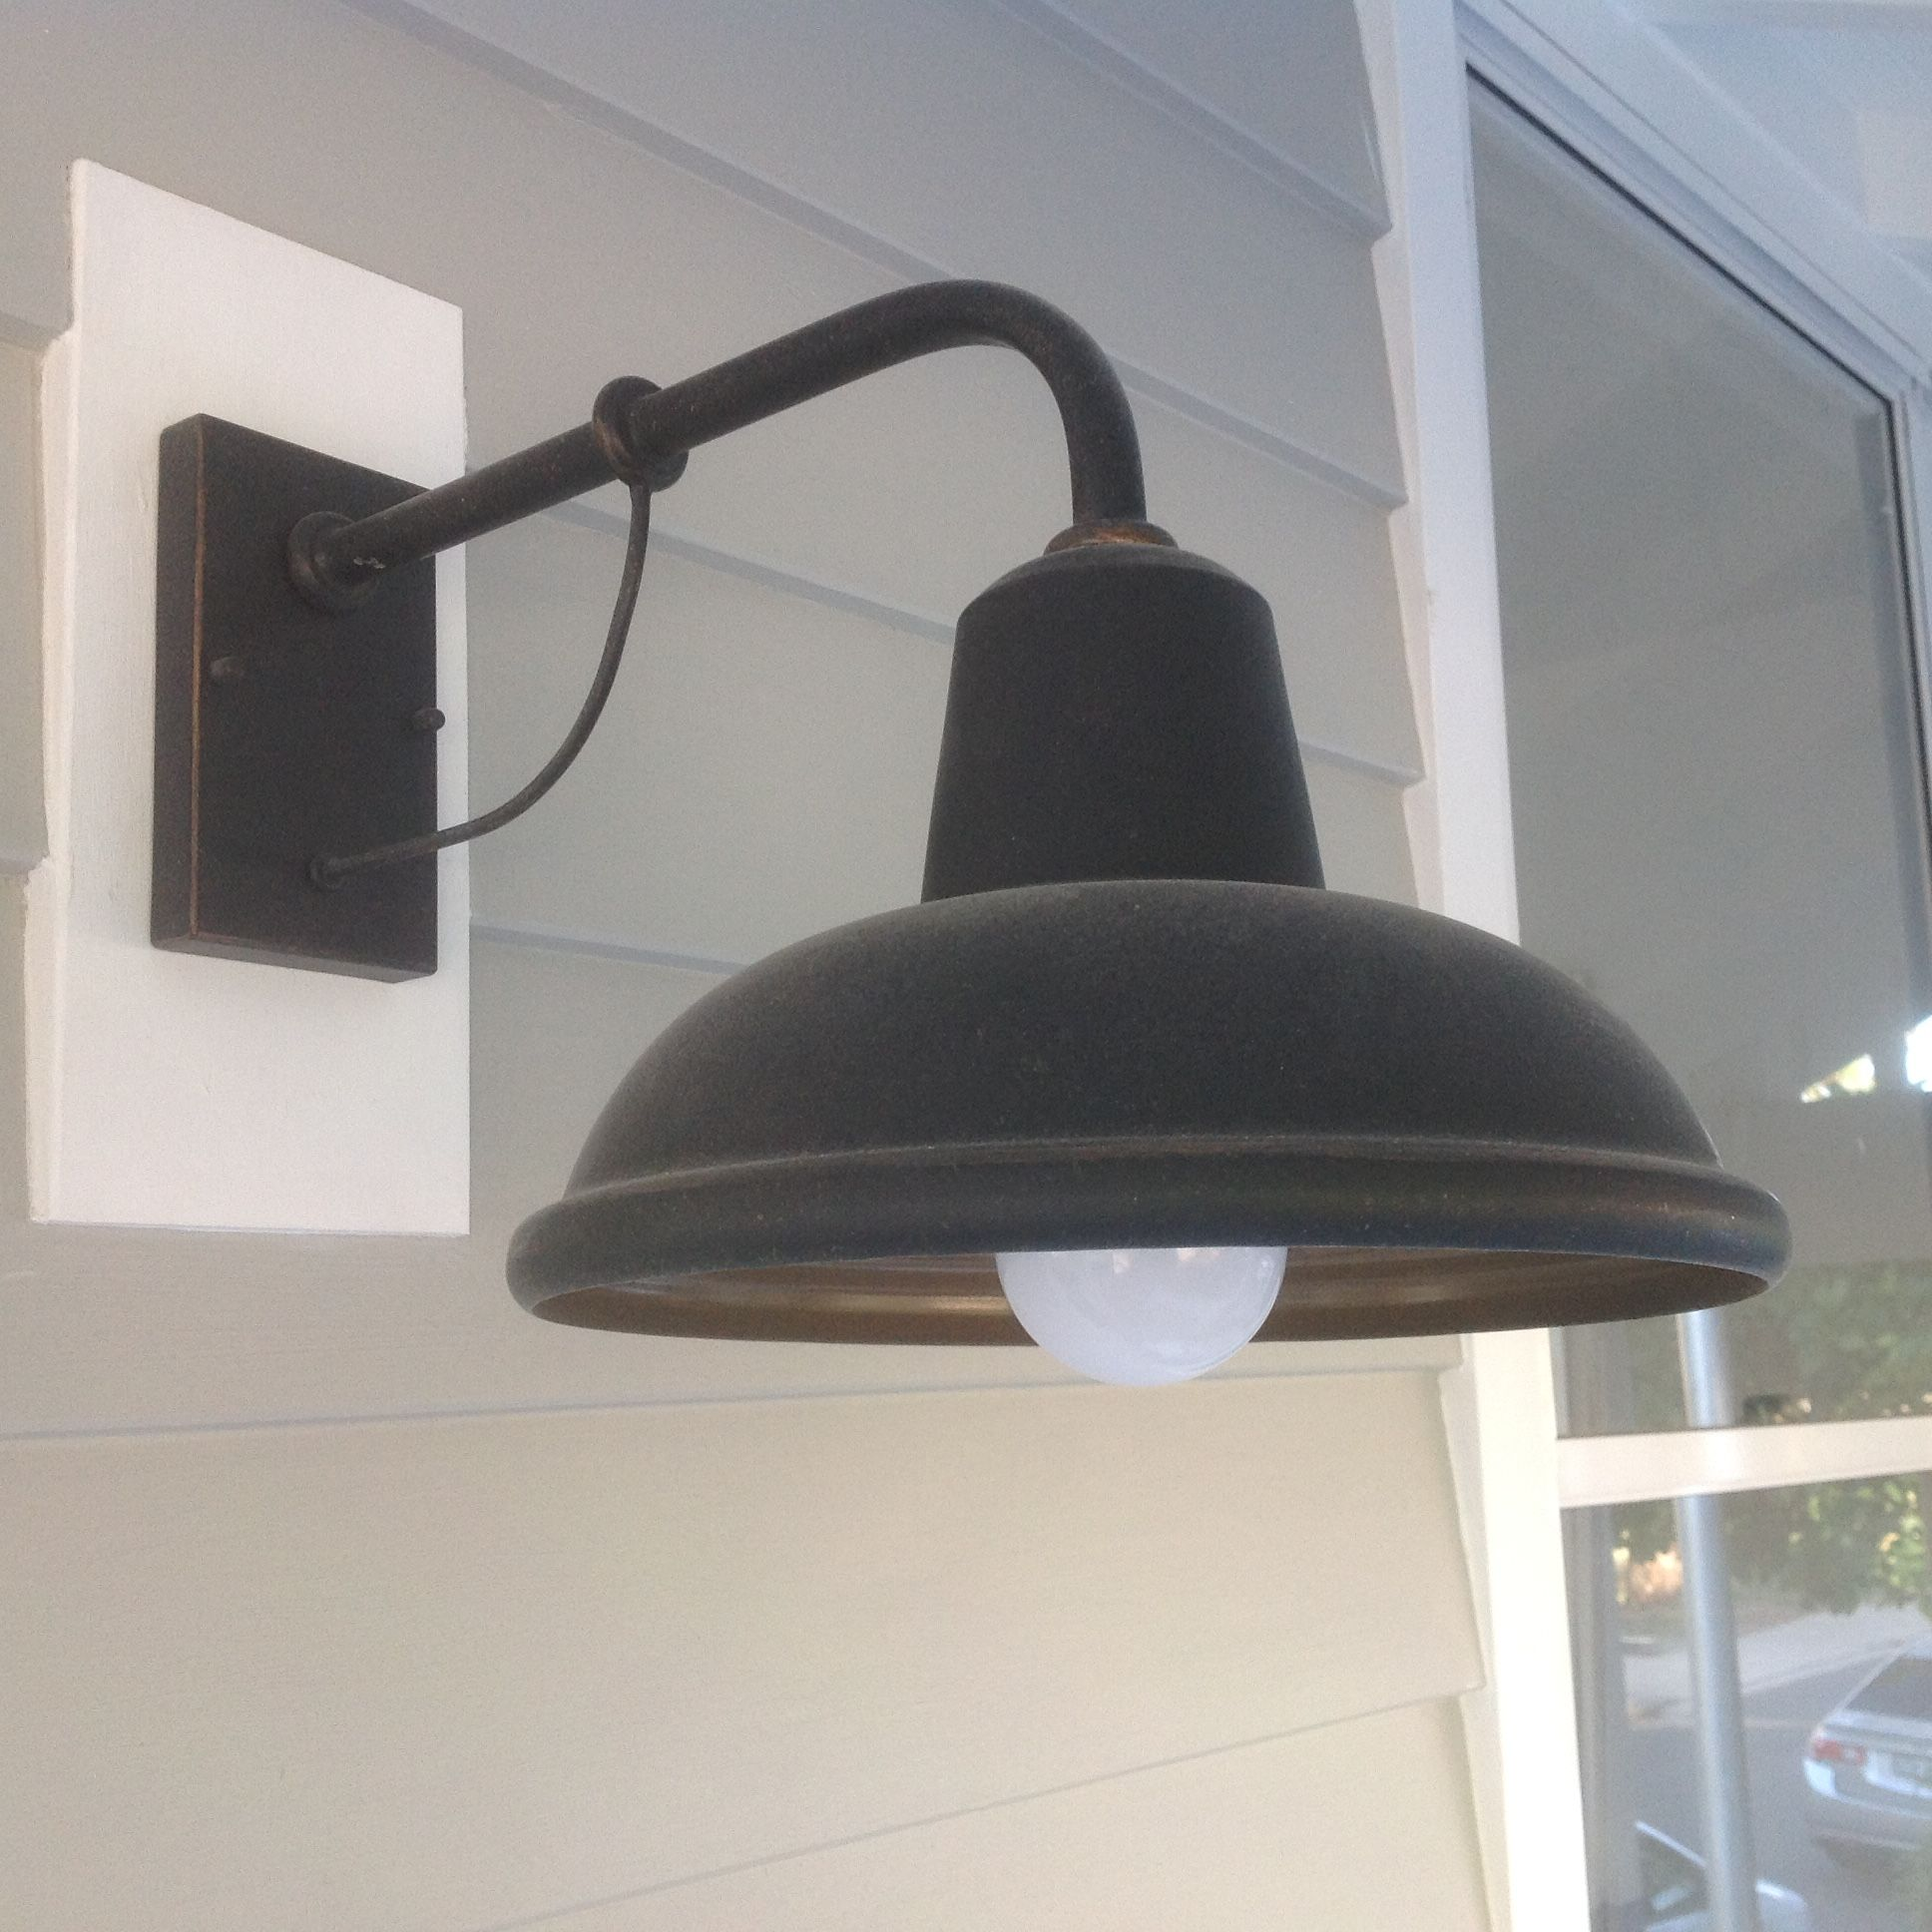 This Australian Working Cottage Exterior Wall Light Is Perfect For This House Renovation In